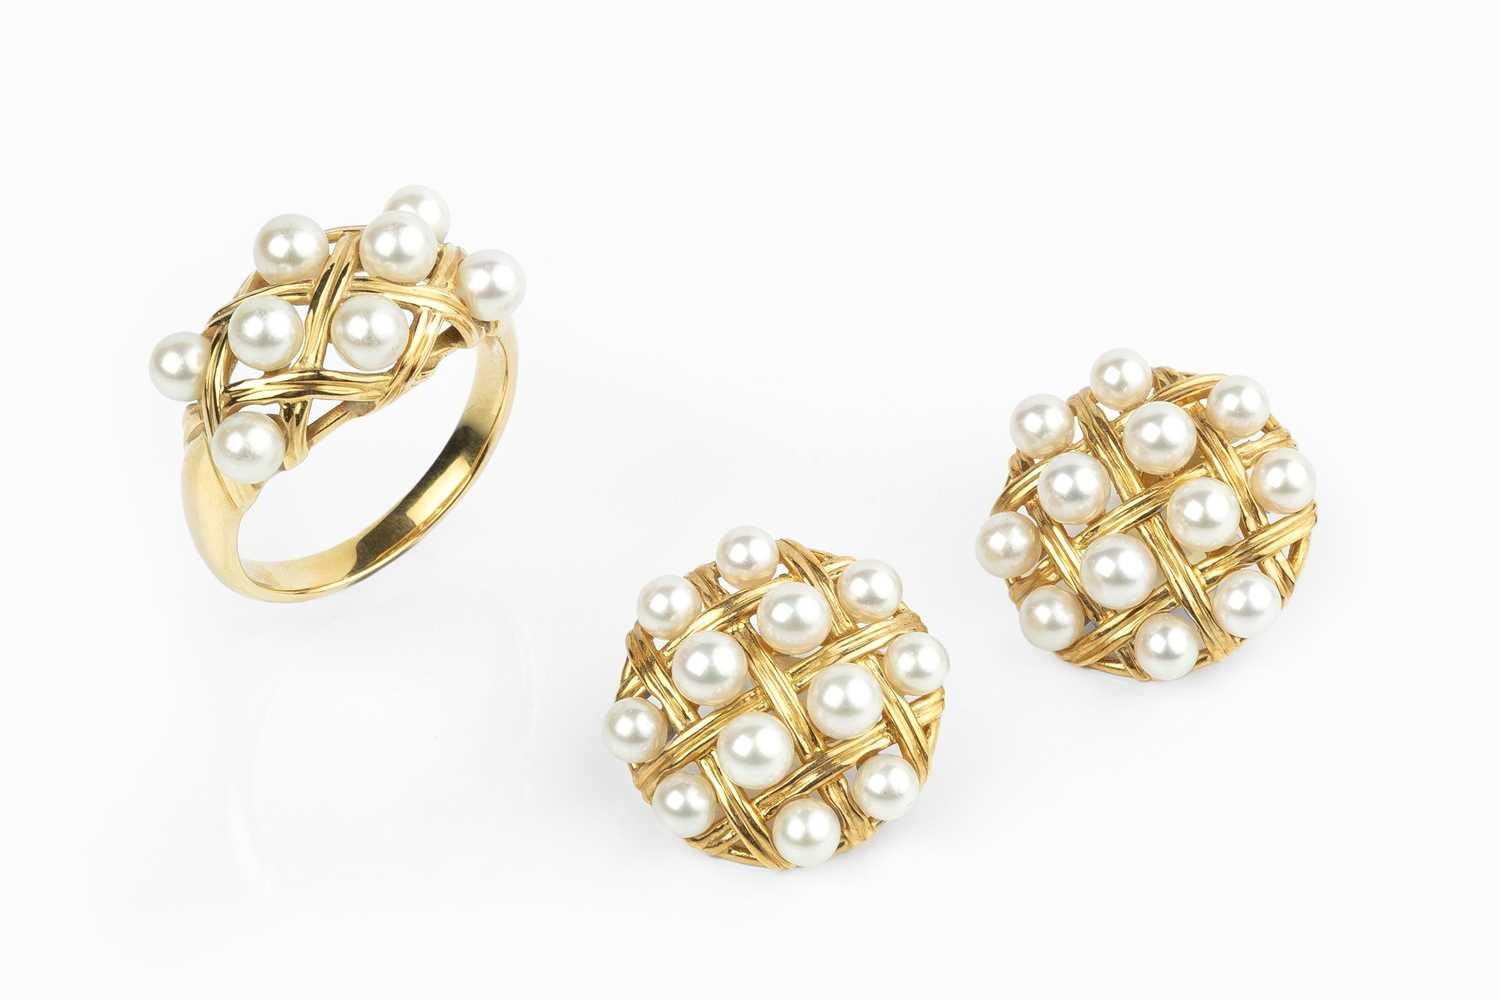 A cultured pearl ring and ear clips suite, each designed as a lattice-work panel, interspersed